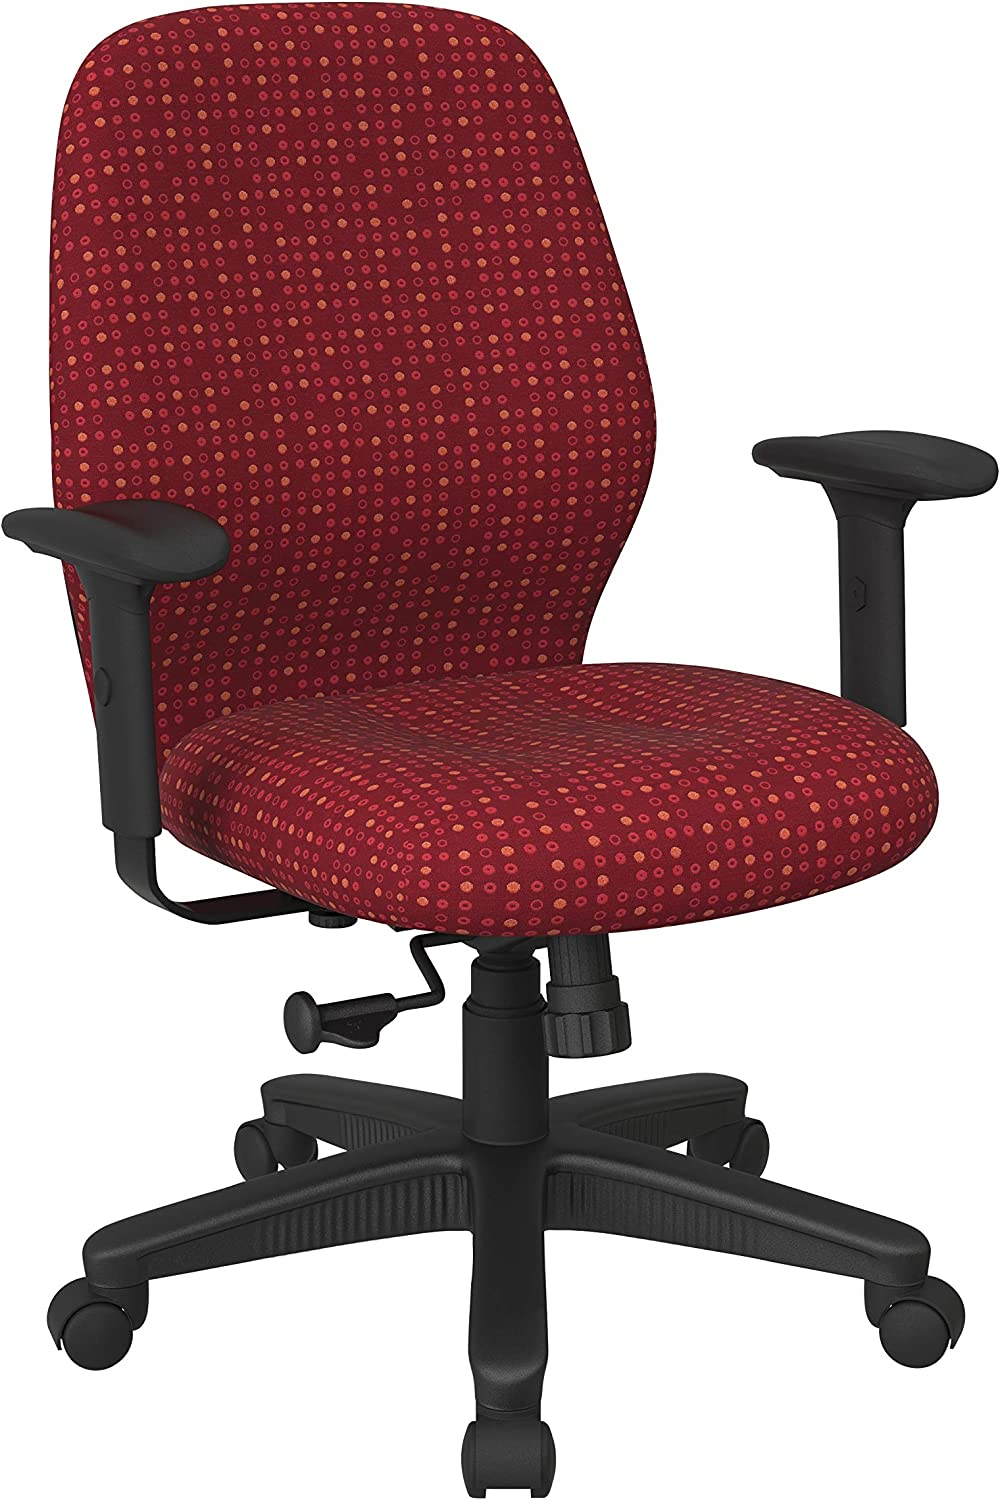 Office Star Ergonomic Mid Back Chair with 100% quality NEW before selling ☆ warranty Desk Syn 2-to-1